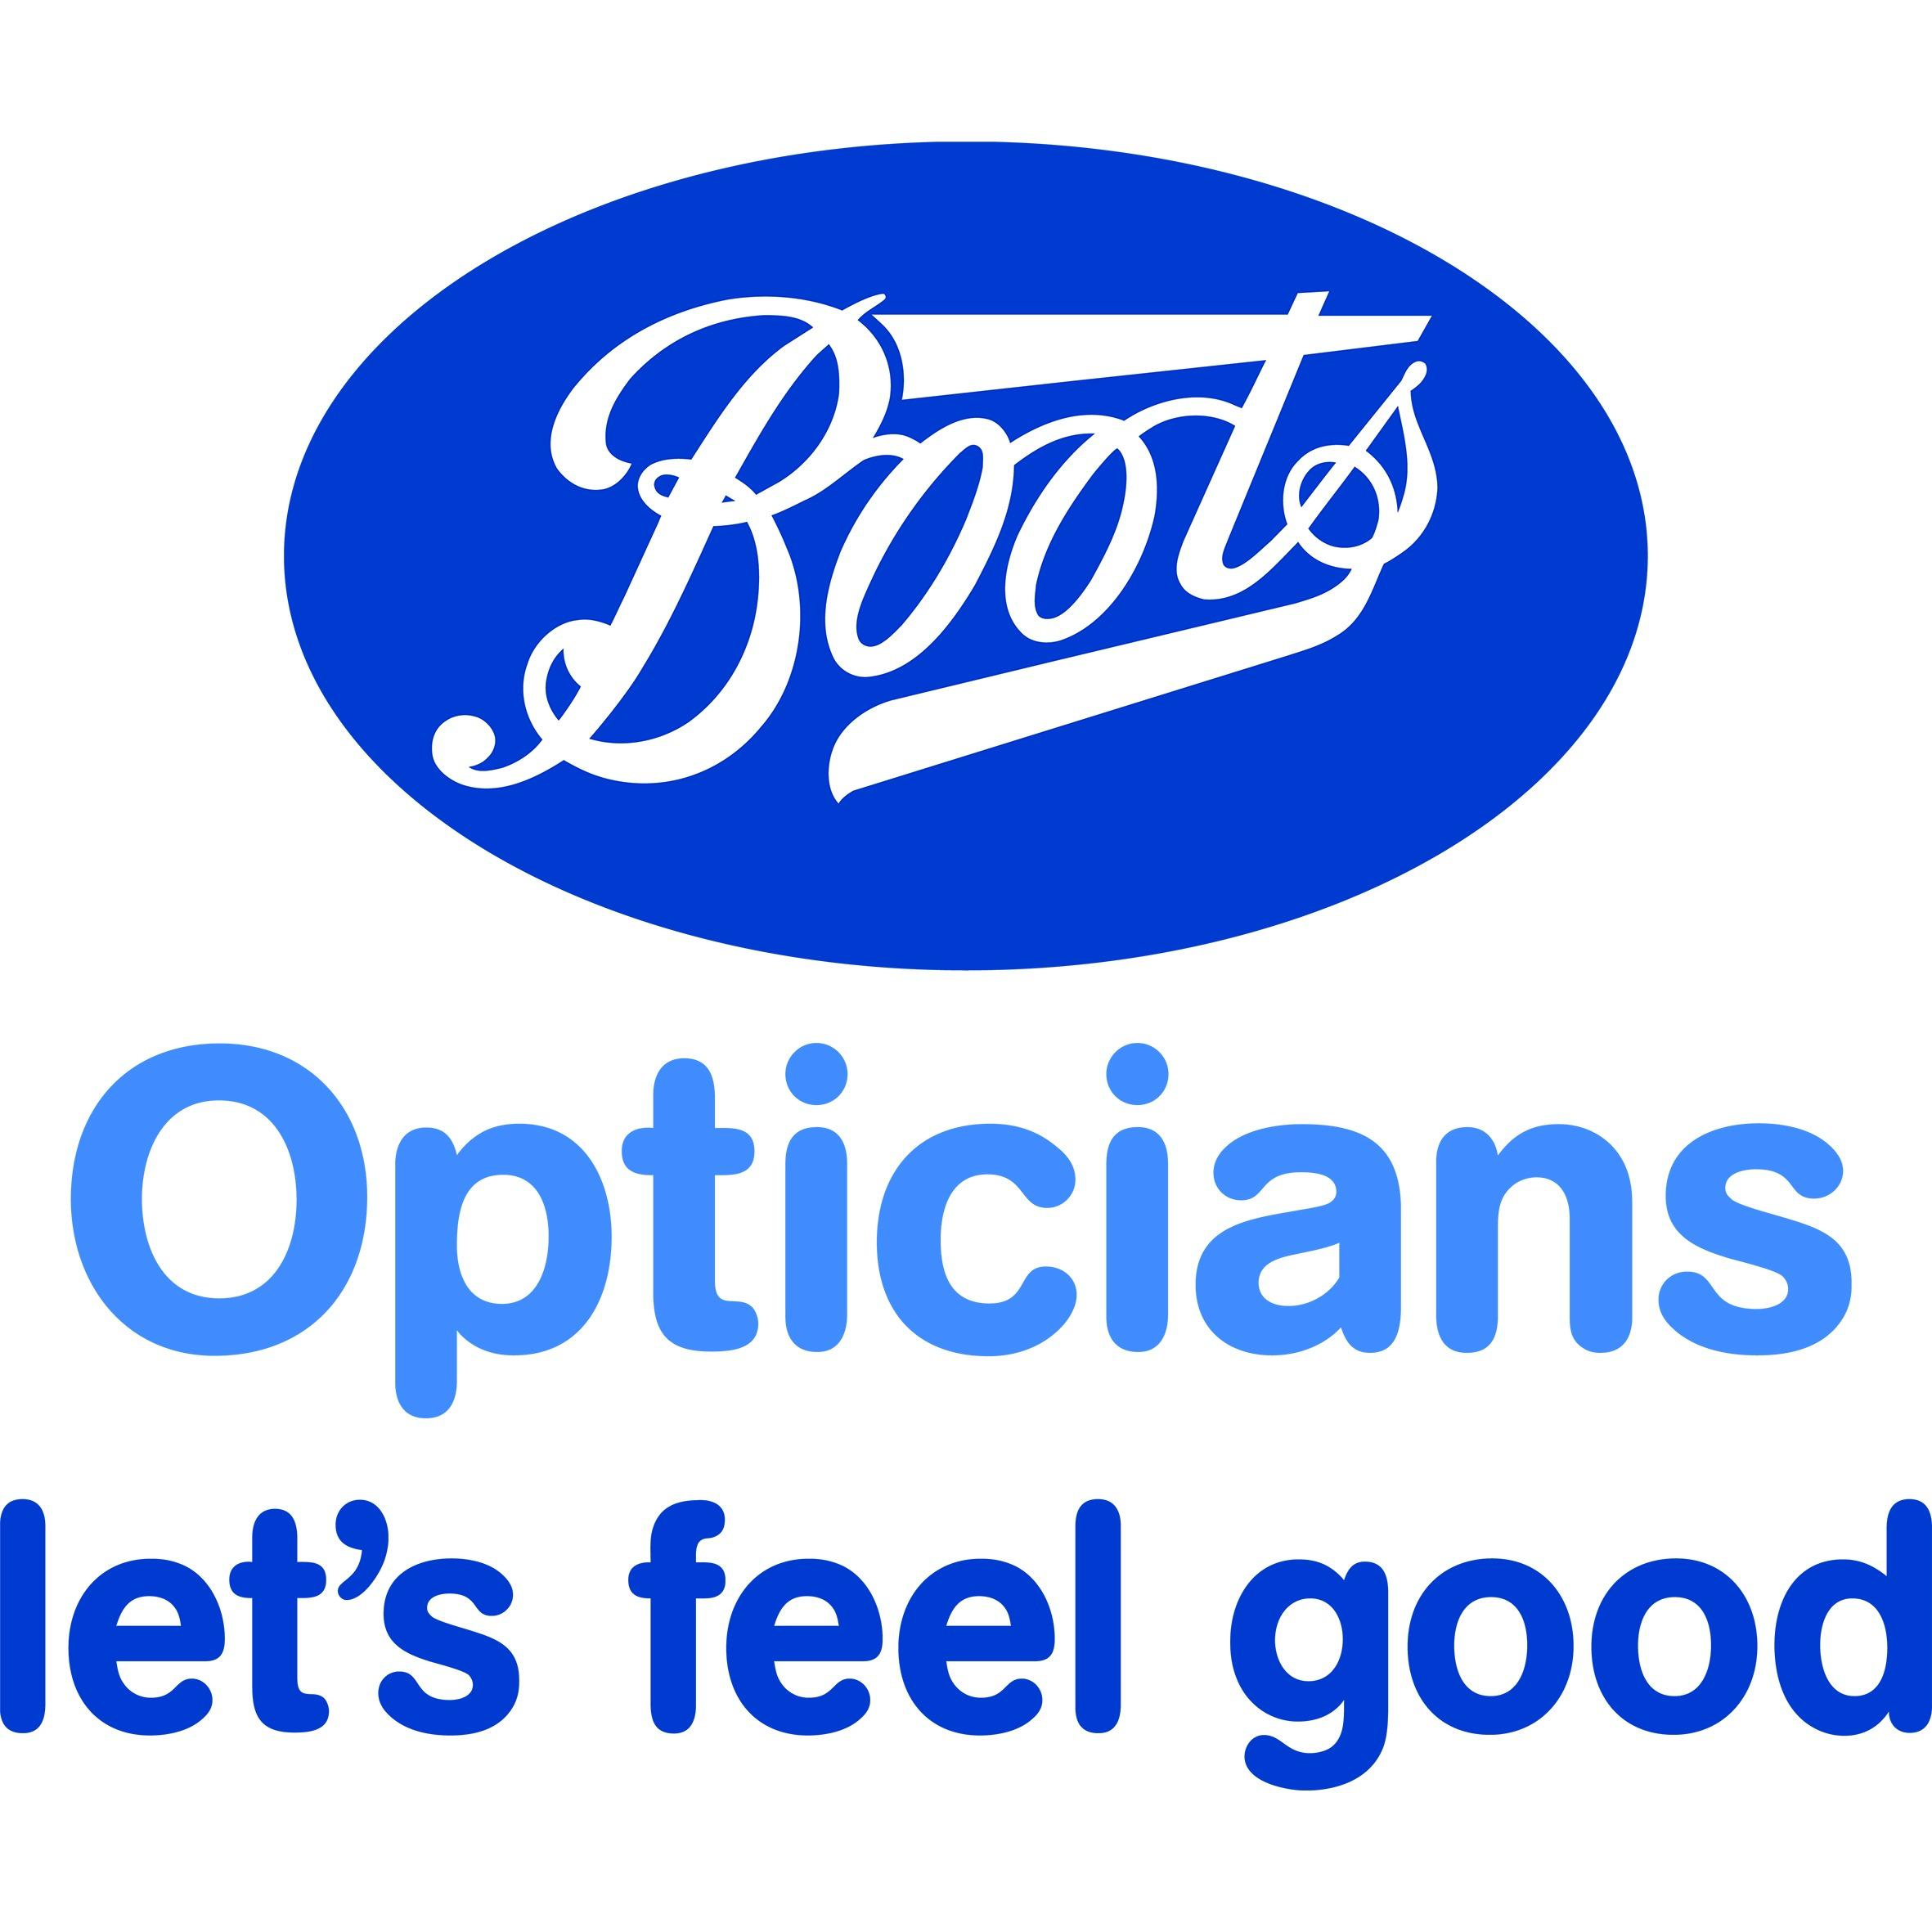 Boots Opticians - Bolton, Lancashire BL1 1DF - 03451 253776 | ShowMeLocal.com